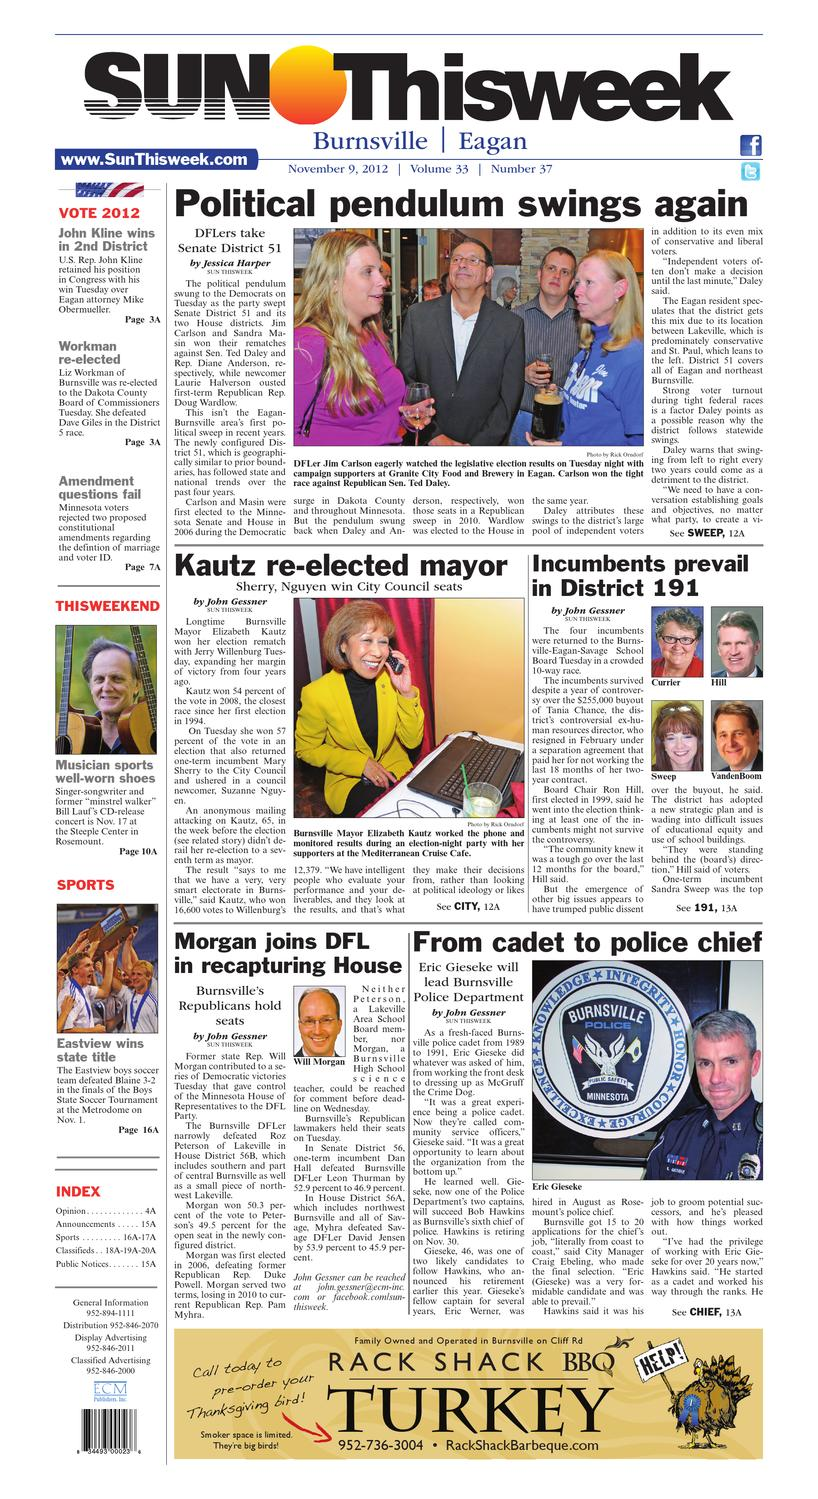 sun thisweek burnsville and eagan by thisweek newspapers dakota sun thisweek burnsville and eagan by thisweek newspapers dakota county tribune business weekly issuu